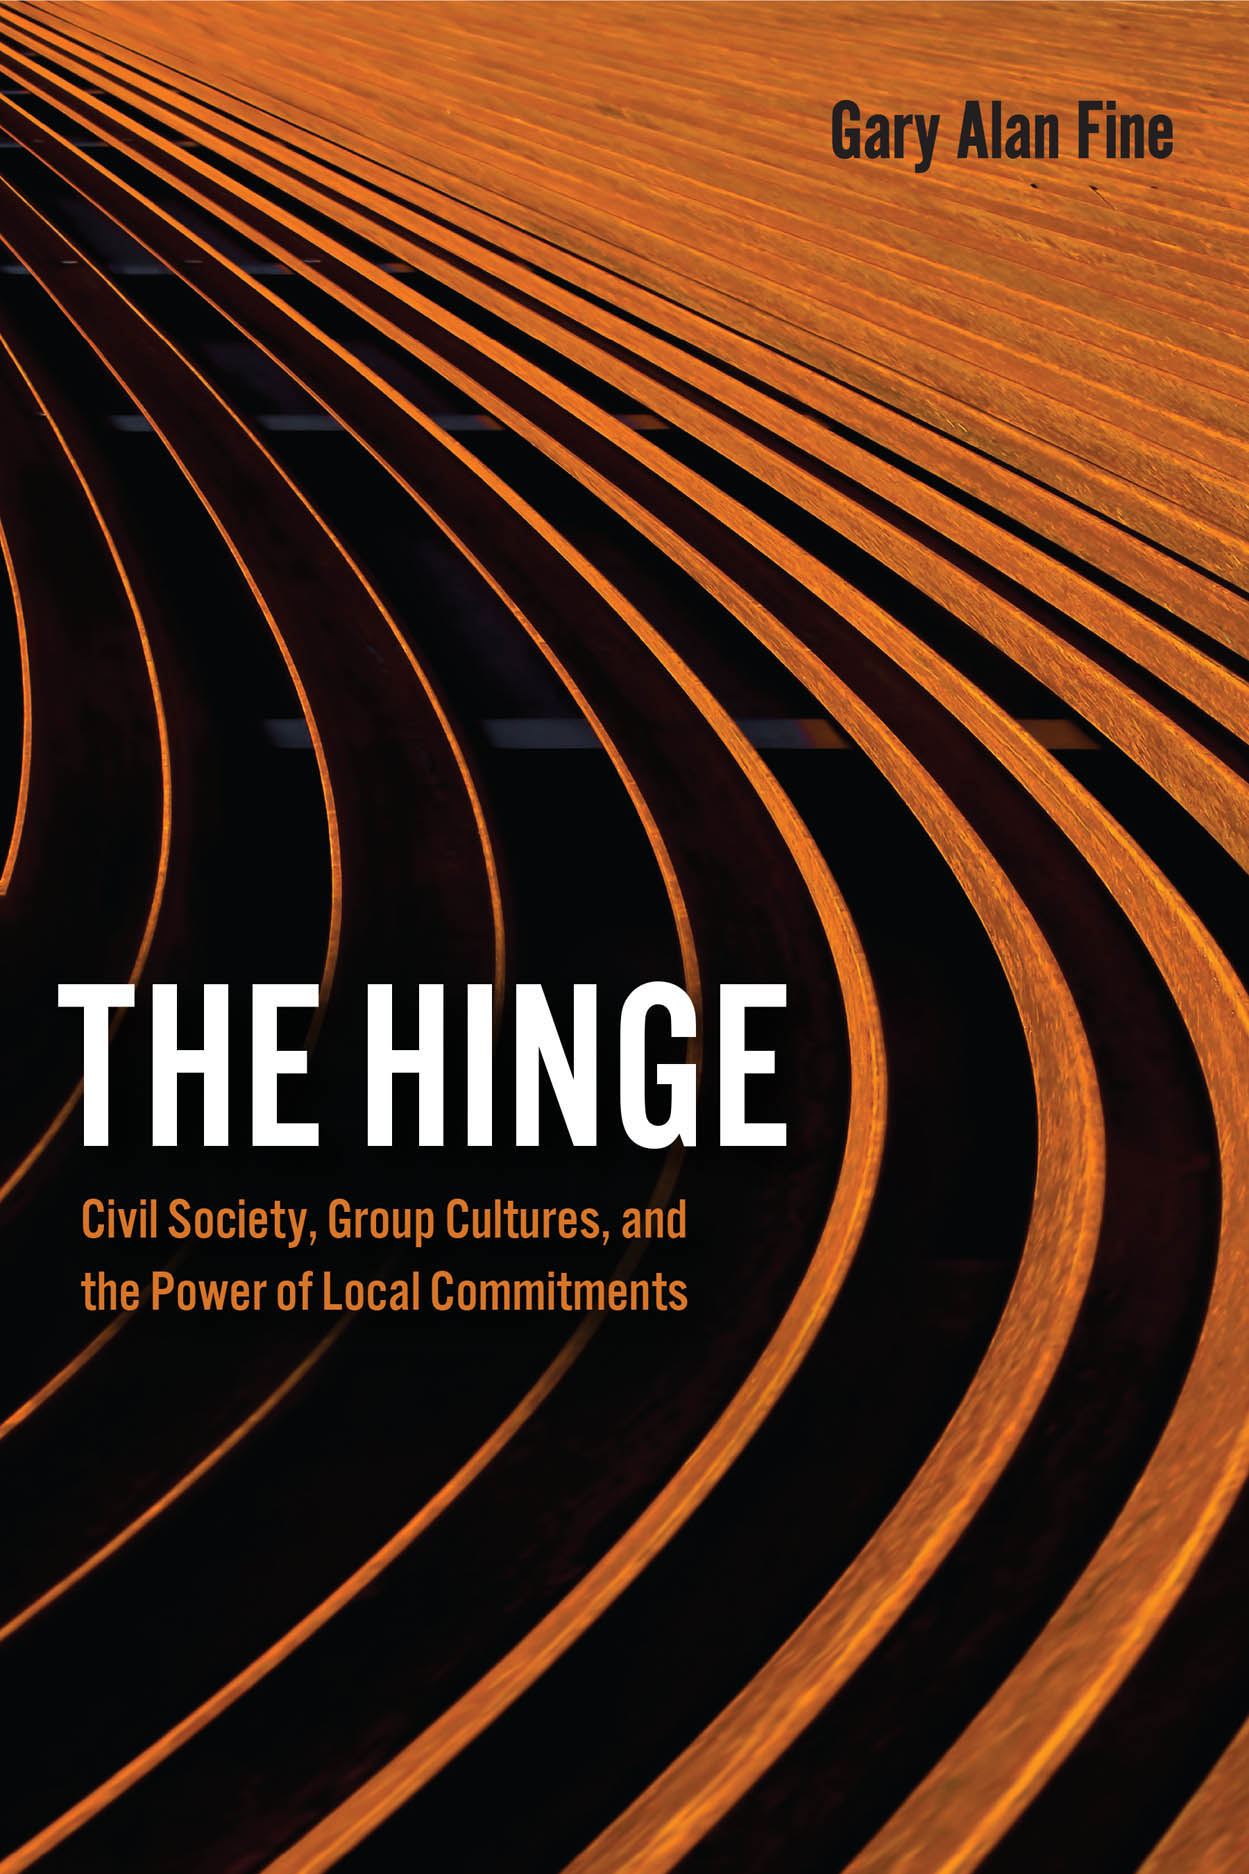 The Hinge: Civil Society, Group Cultures, and the Power of Local Commitments